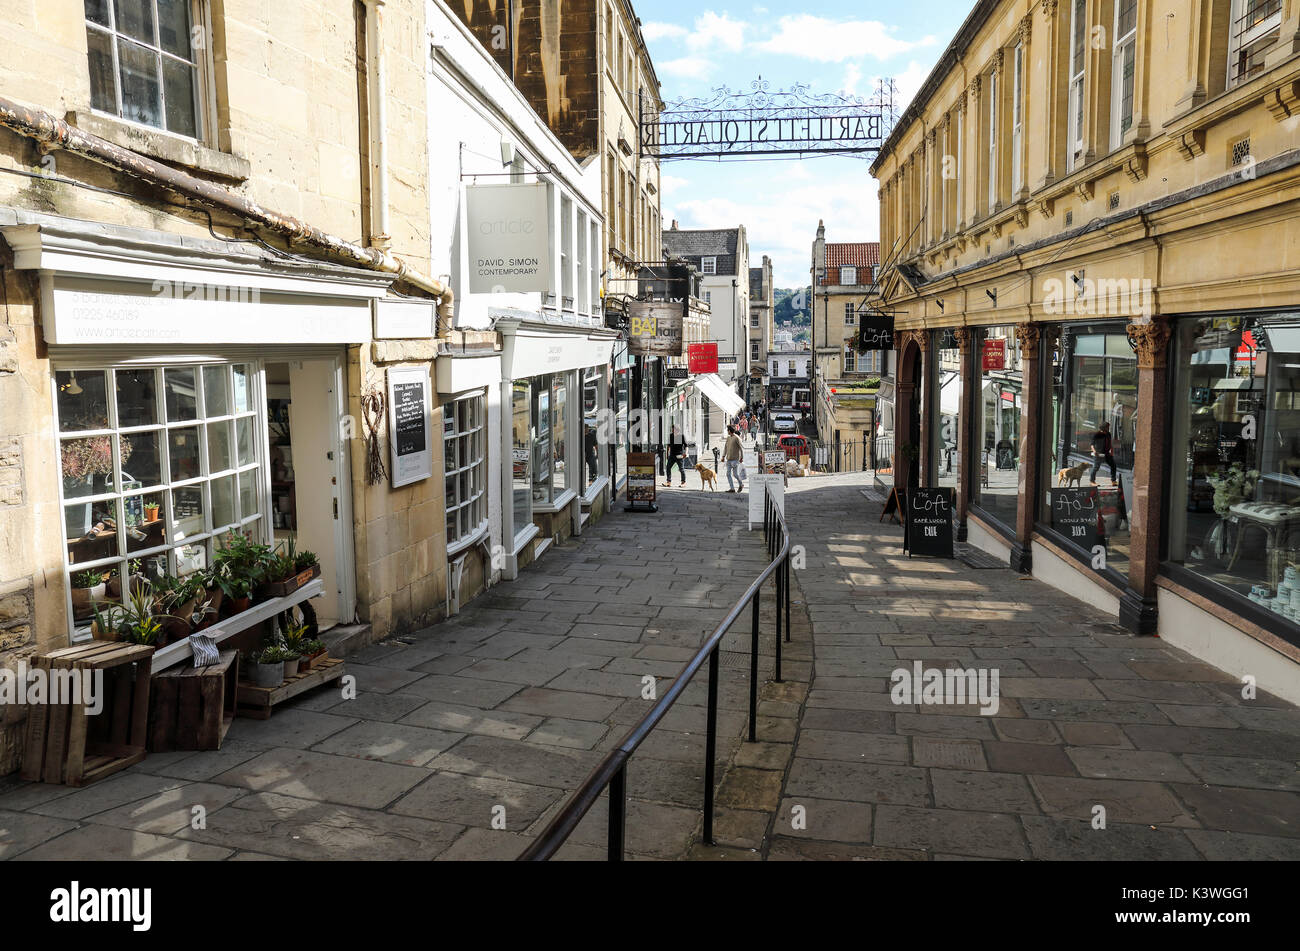 Bartlett St Quarter, Bath, Somerset, England - Stock Image